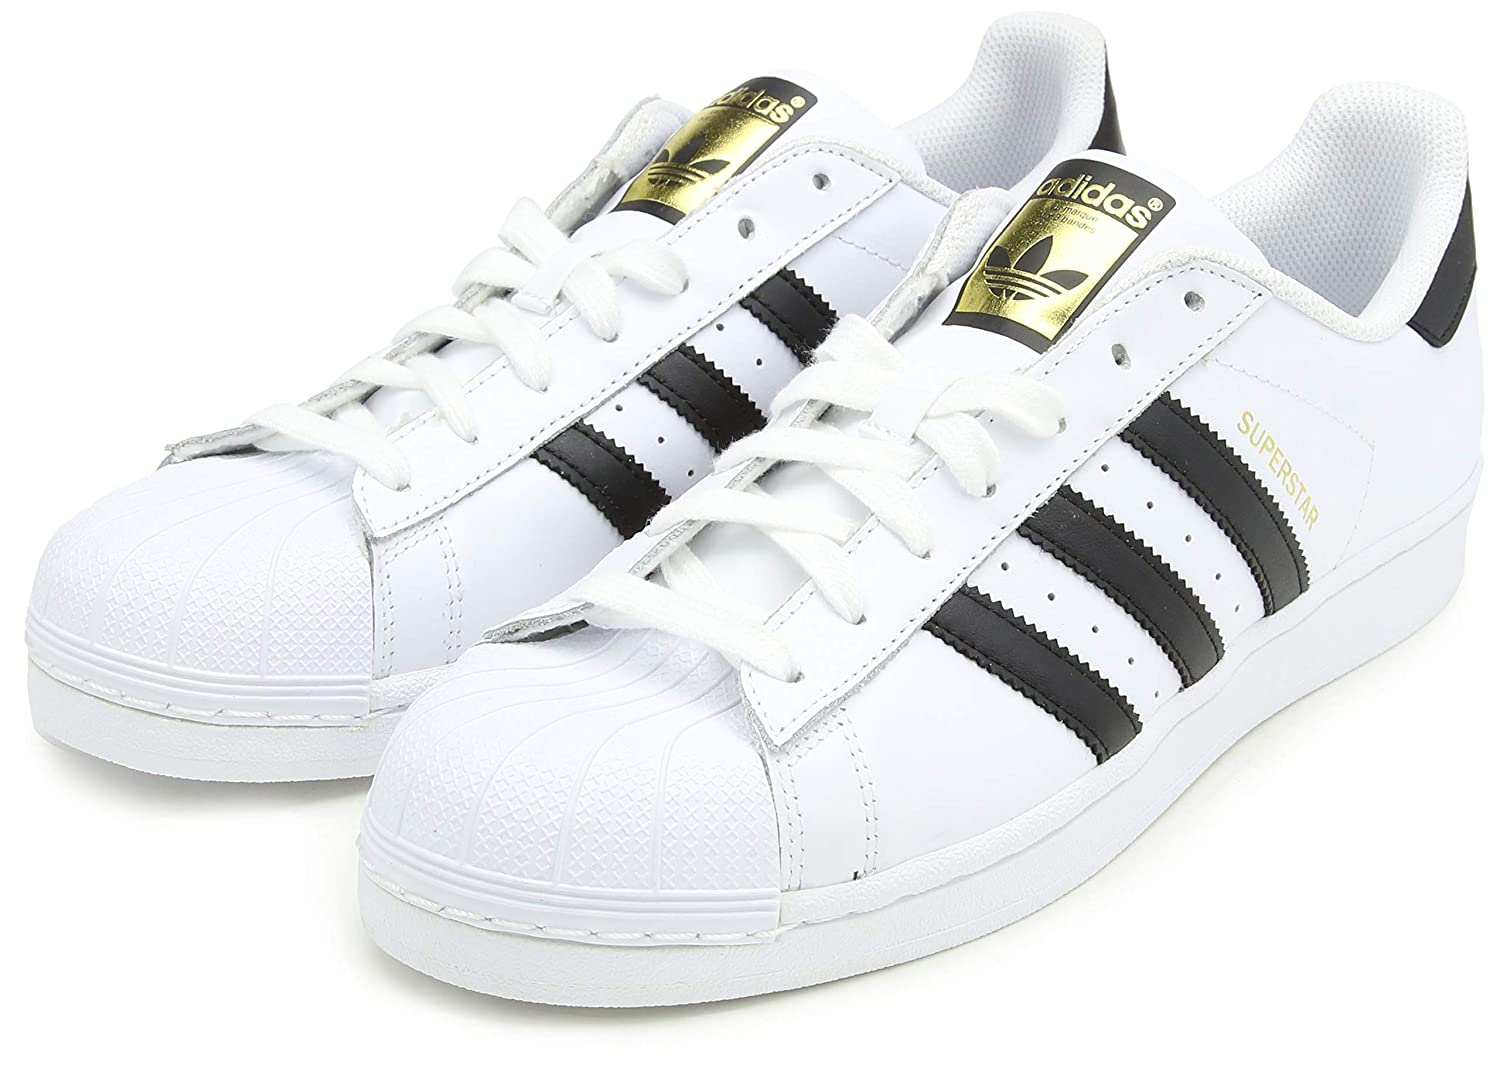 new style a9e66 7b7bd Amazon.com   adidas Originals Men s Superstar   Shoes